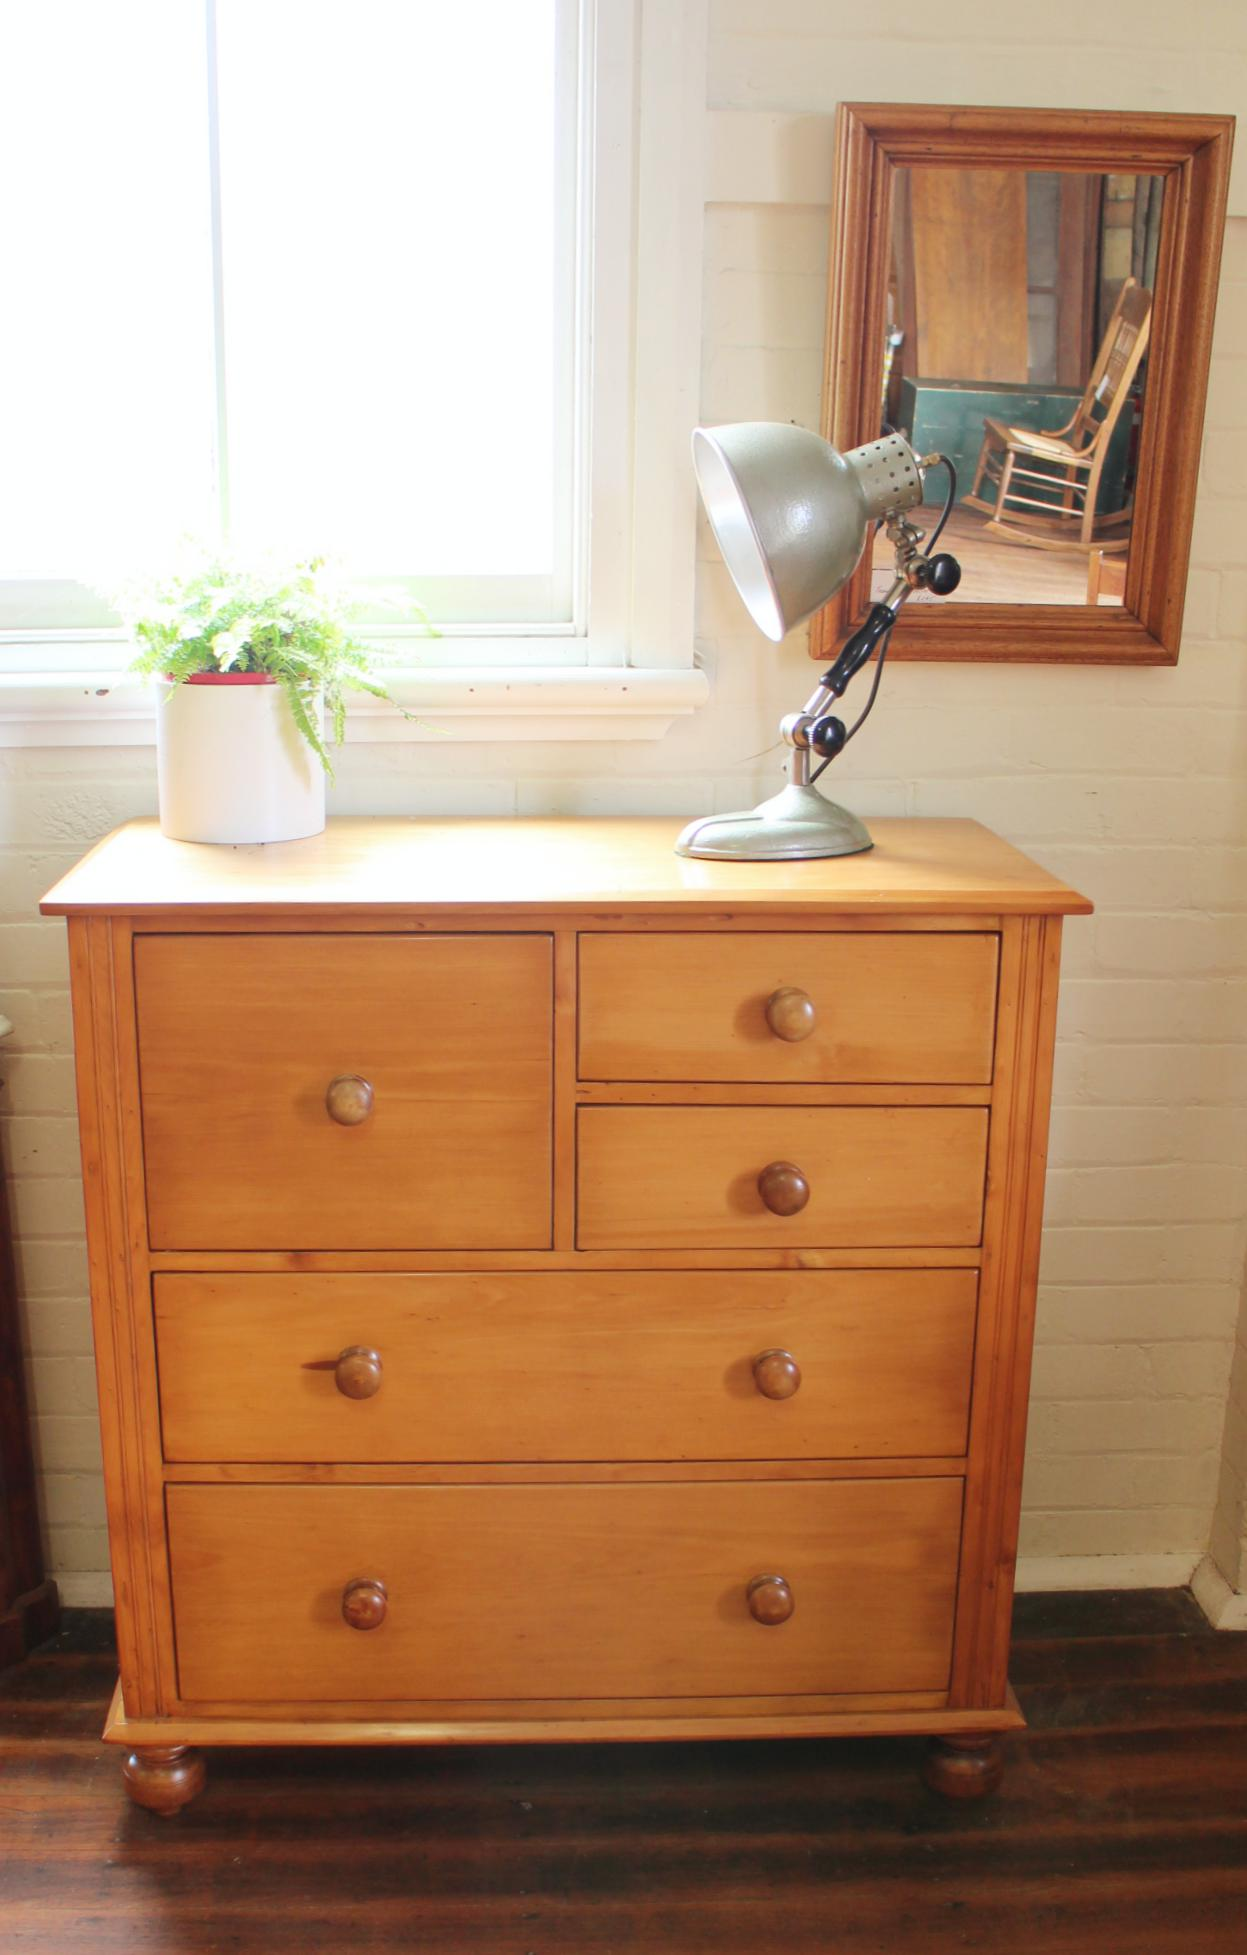 Antique Hoop Pine Chest of Drawers.jpg